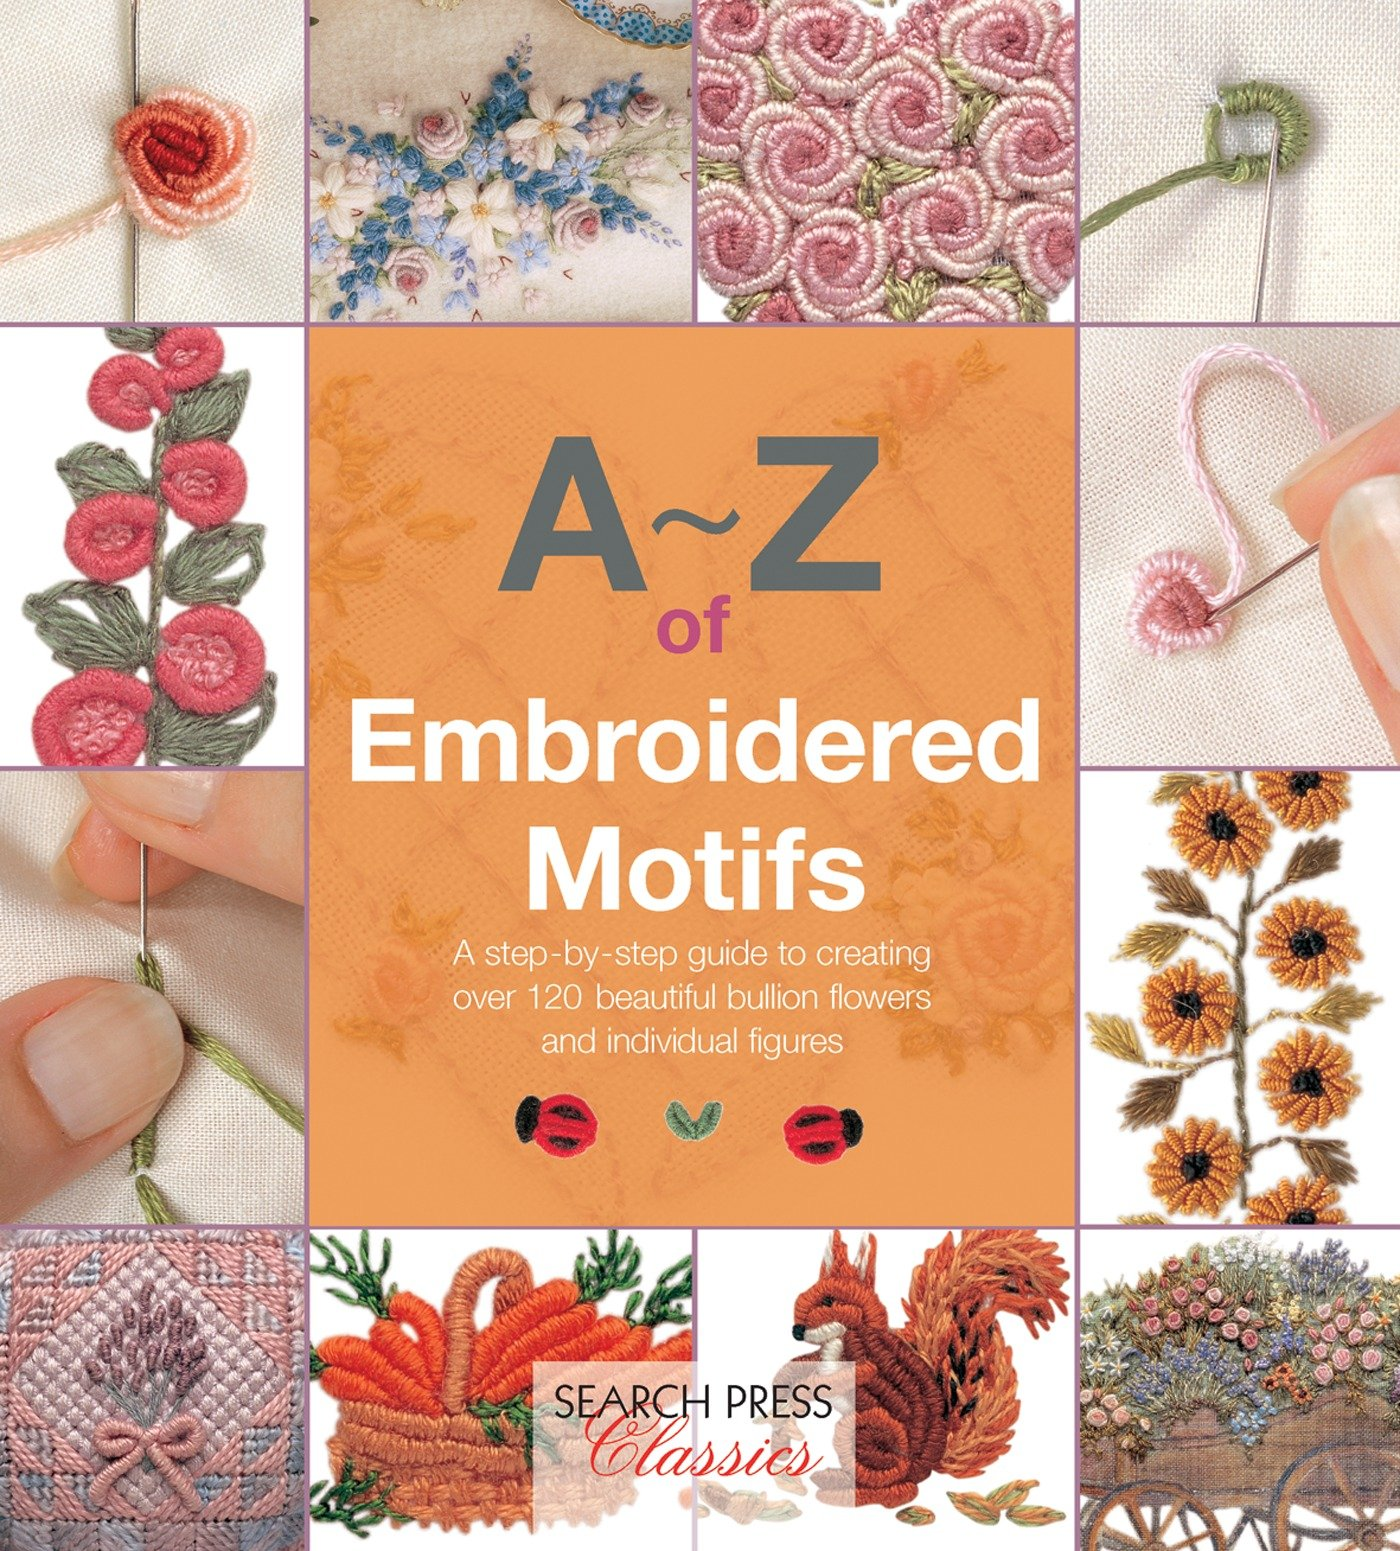 A-Z of Embroidered Motifs: A Step-by-Step Guide to Creating Over 120 Beautiful Bullion Flowers and Individual Figures (A-Z of Needlecraft)